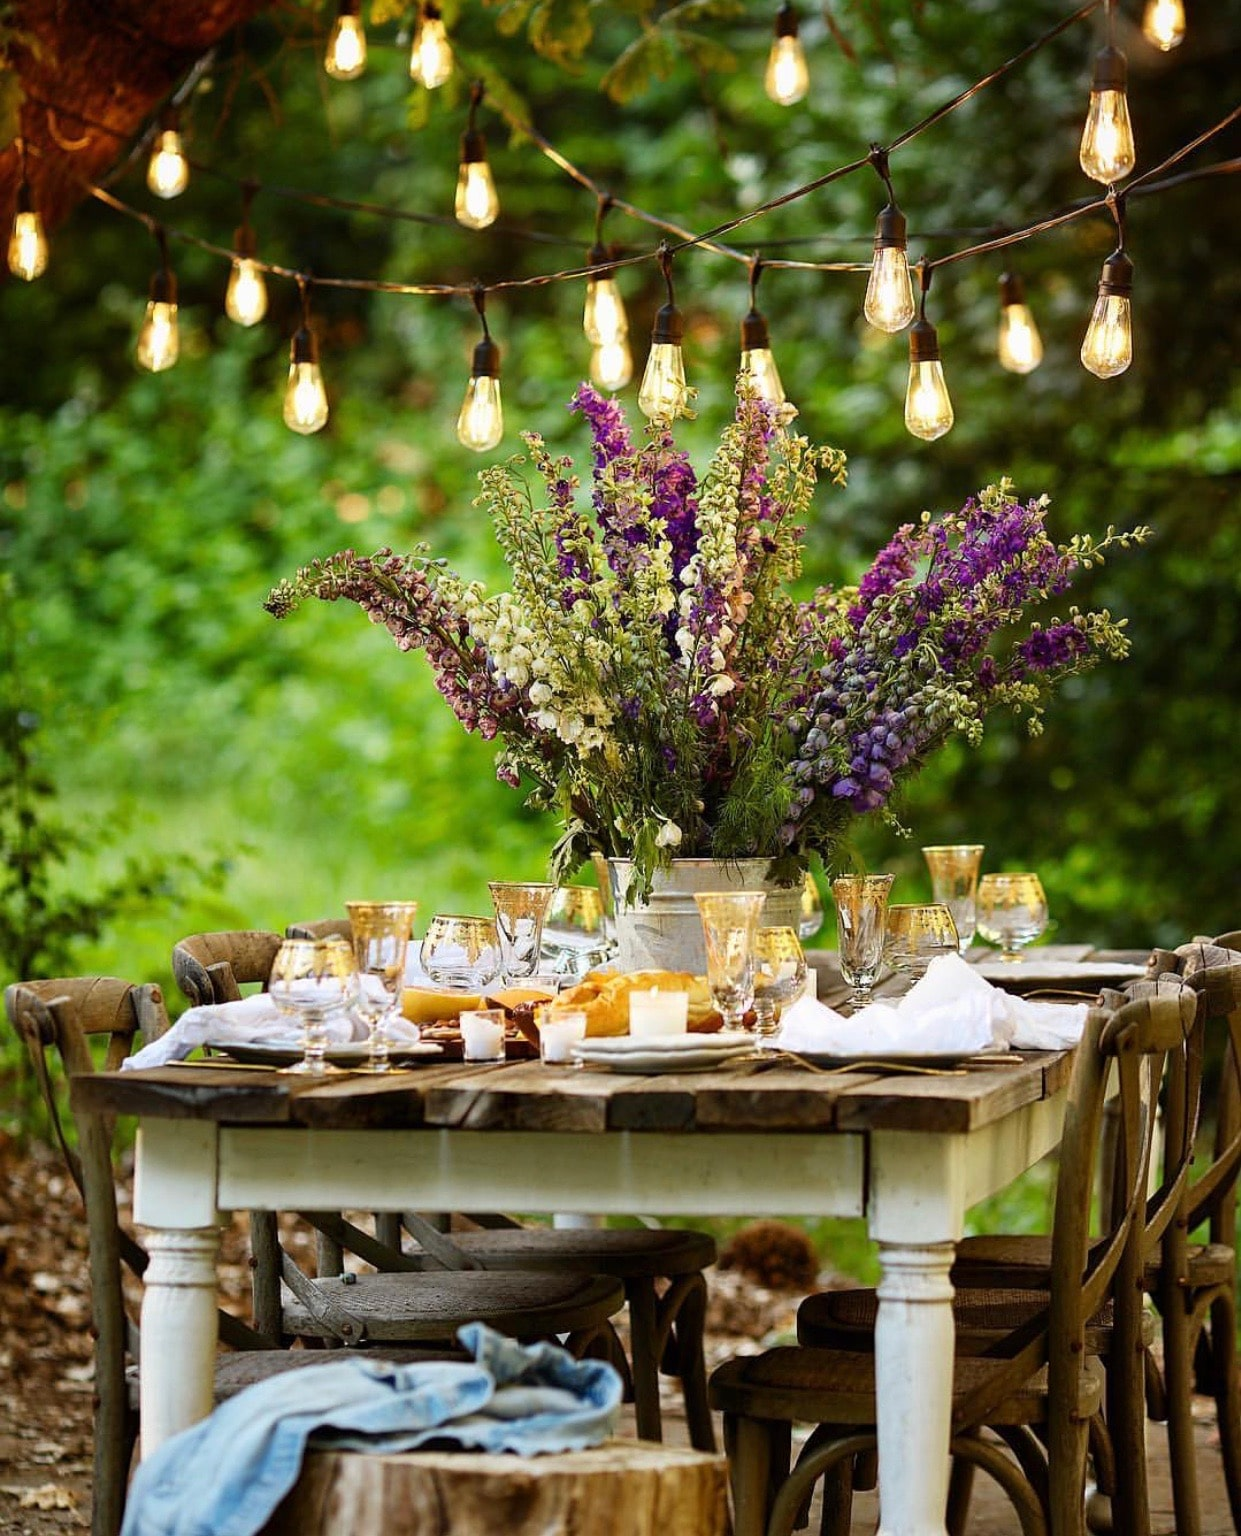 7 Barn Wedding Decoration Ideas For A Spring Wedding: 8 Charming Outdoor Party Decoration Ideas